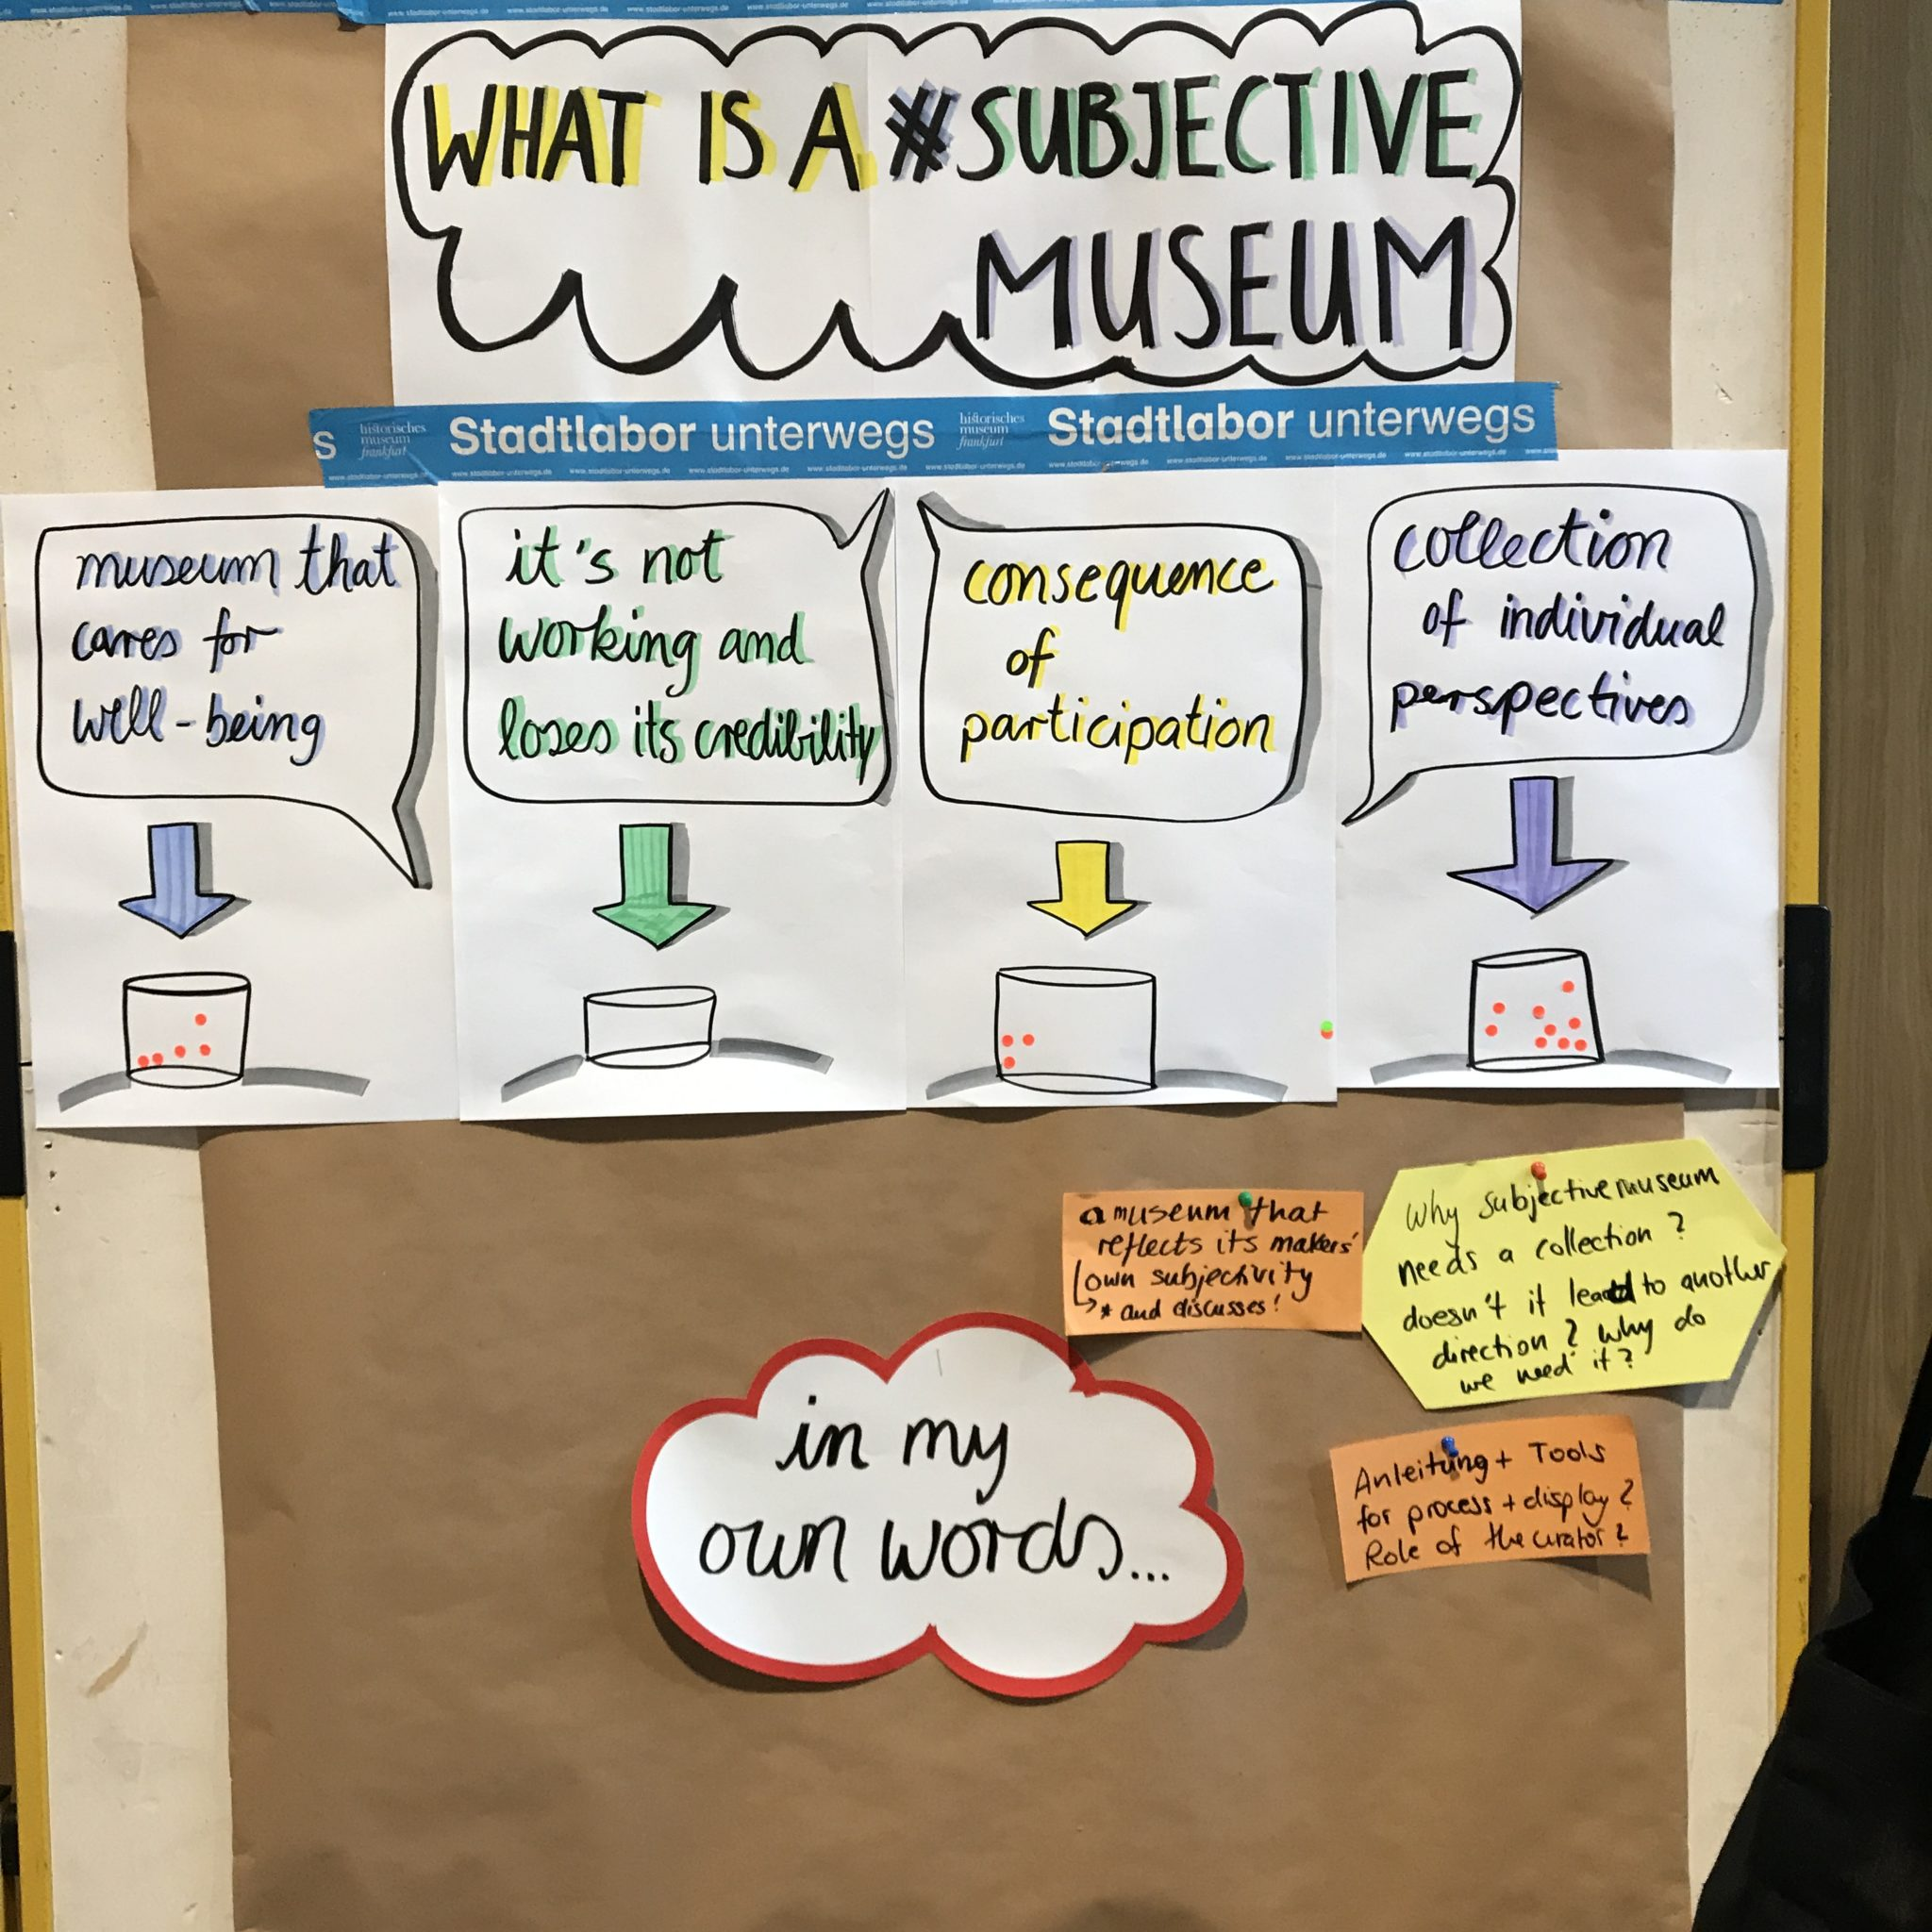 historisches museum frankfurt: the subjective Museum - interactive oister: what is a subjective Museum?